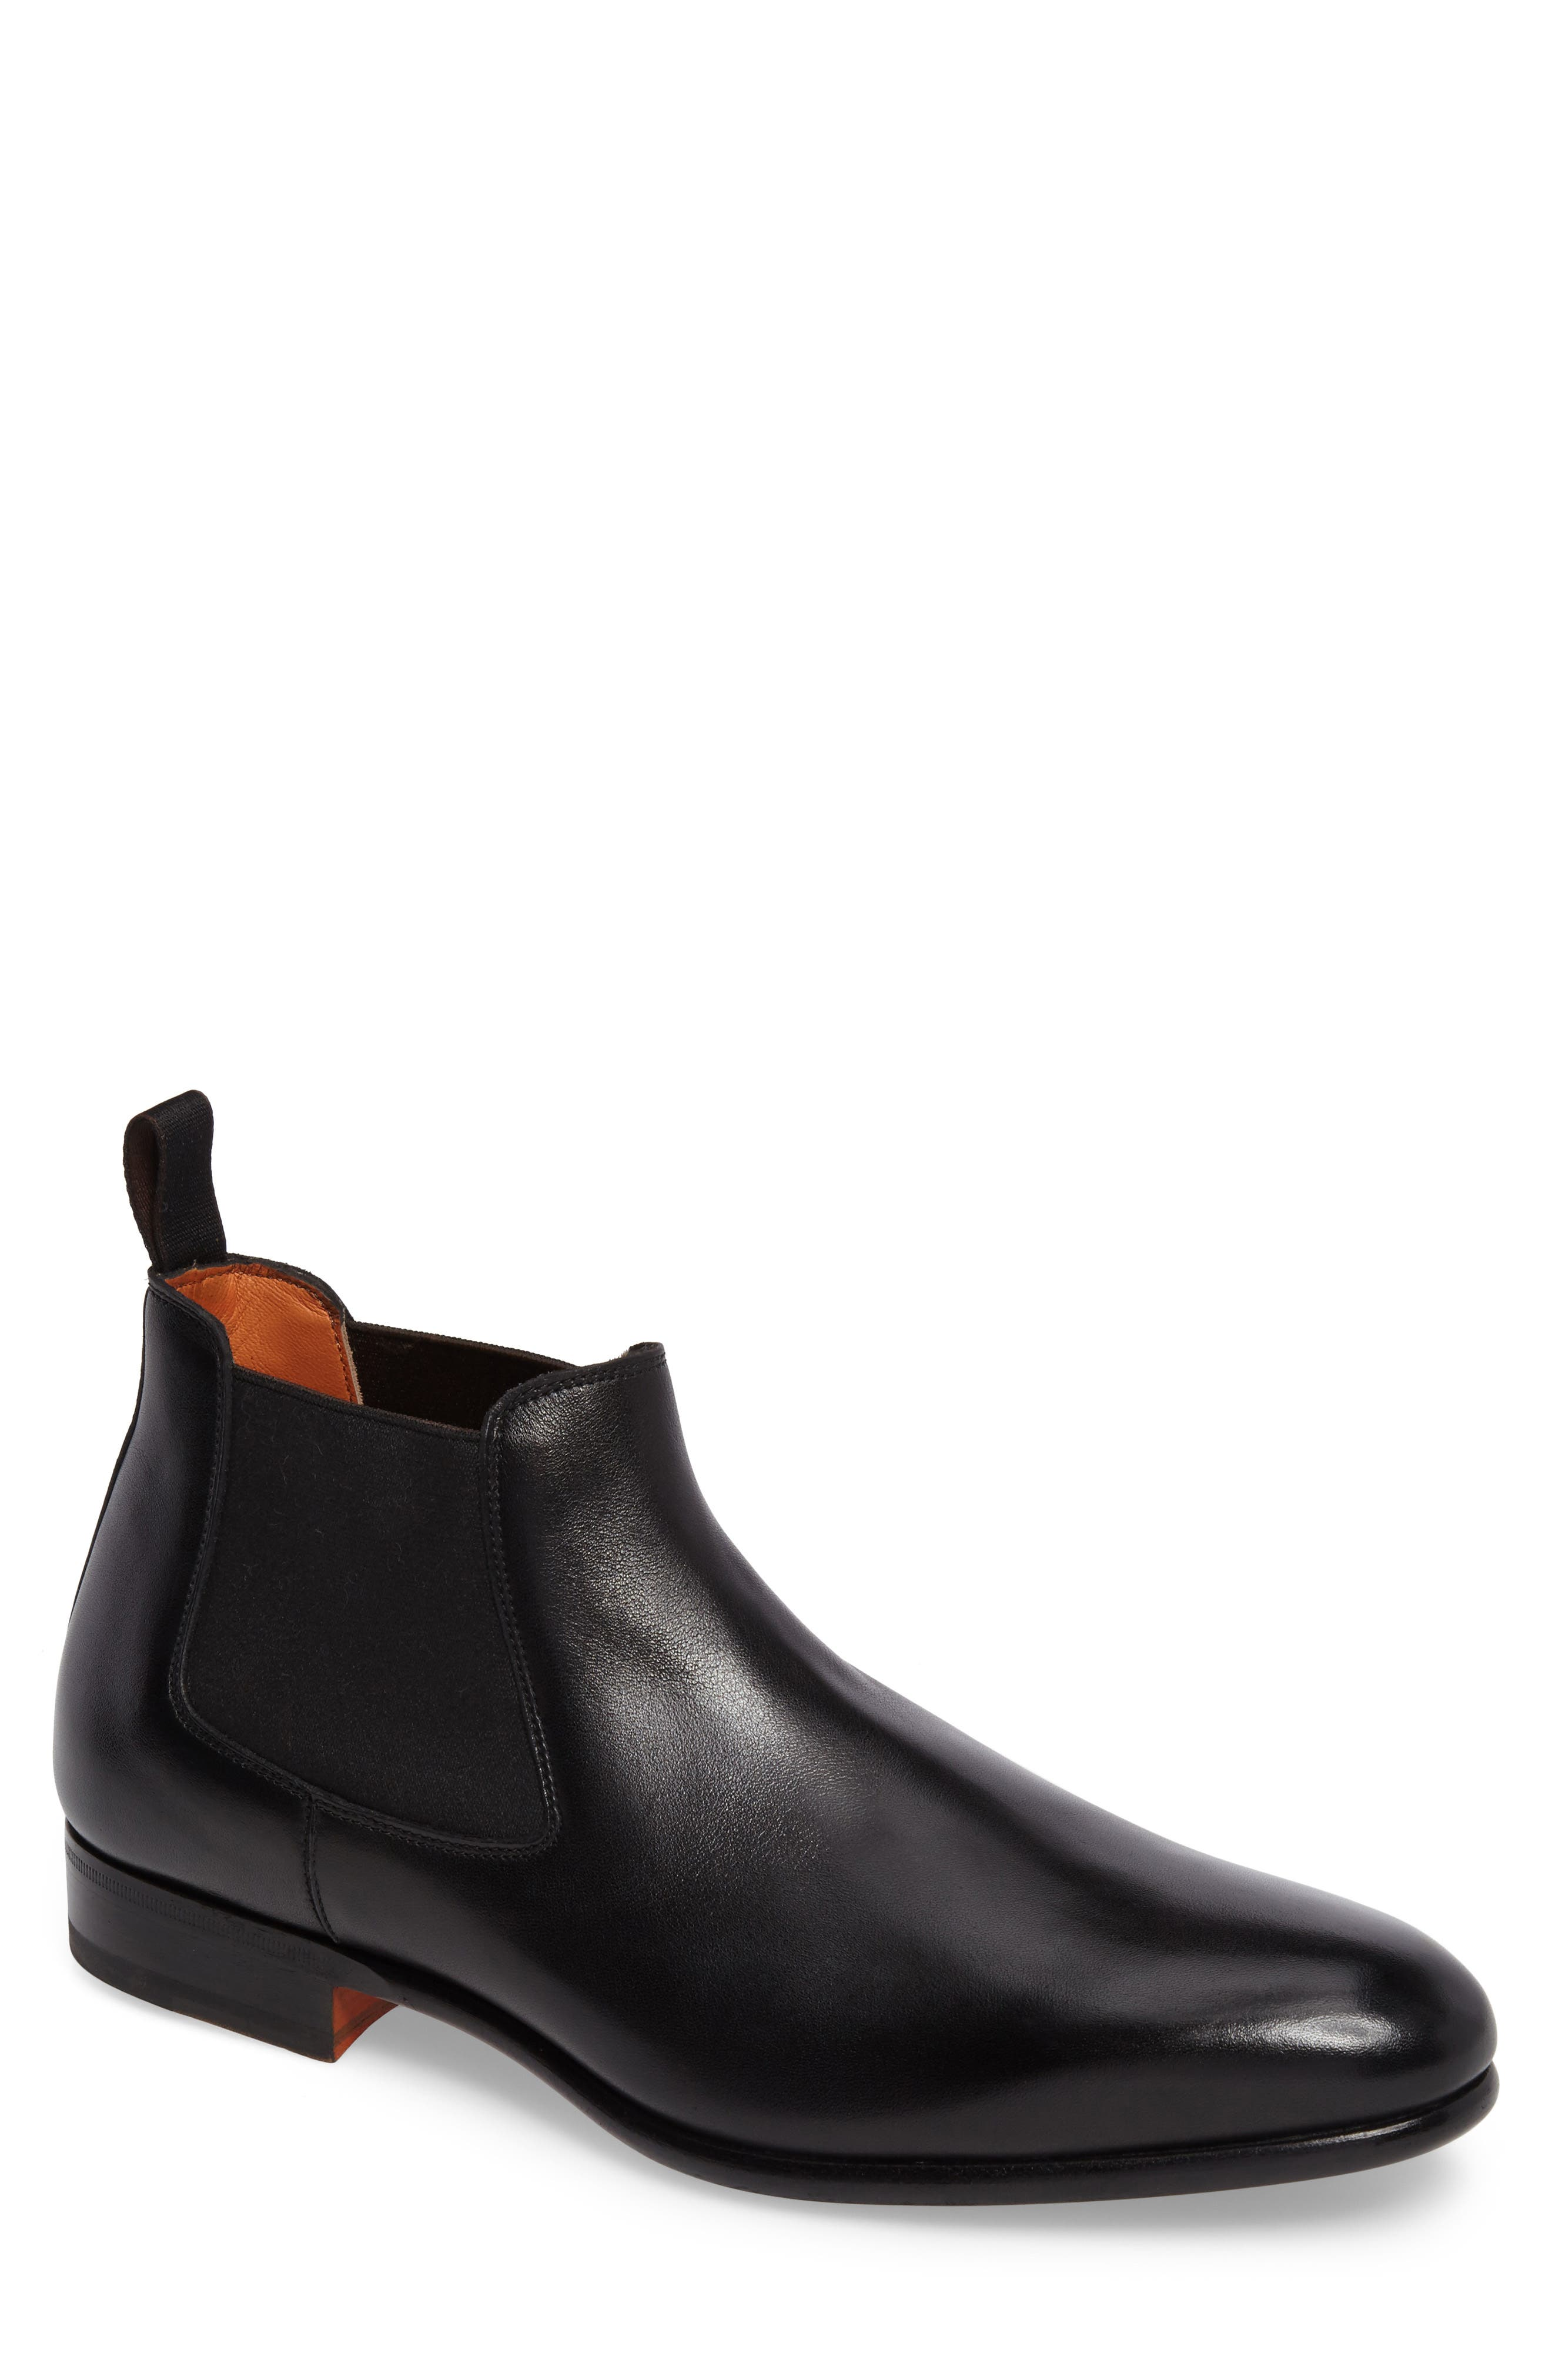 Gunther Chelsea Boot,                             Main thumbnail 1, color,